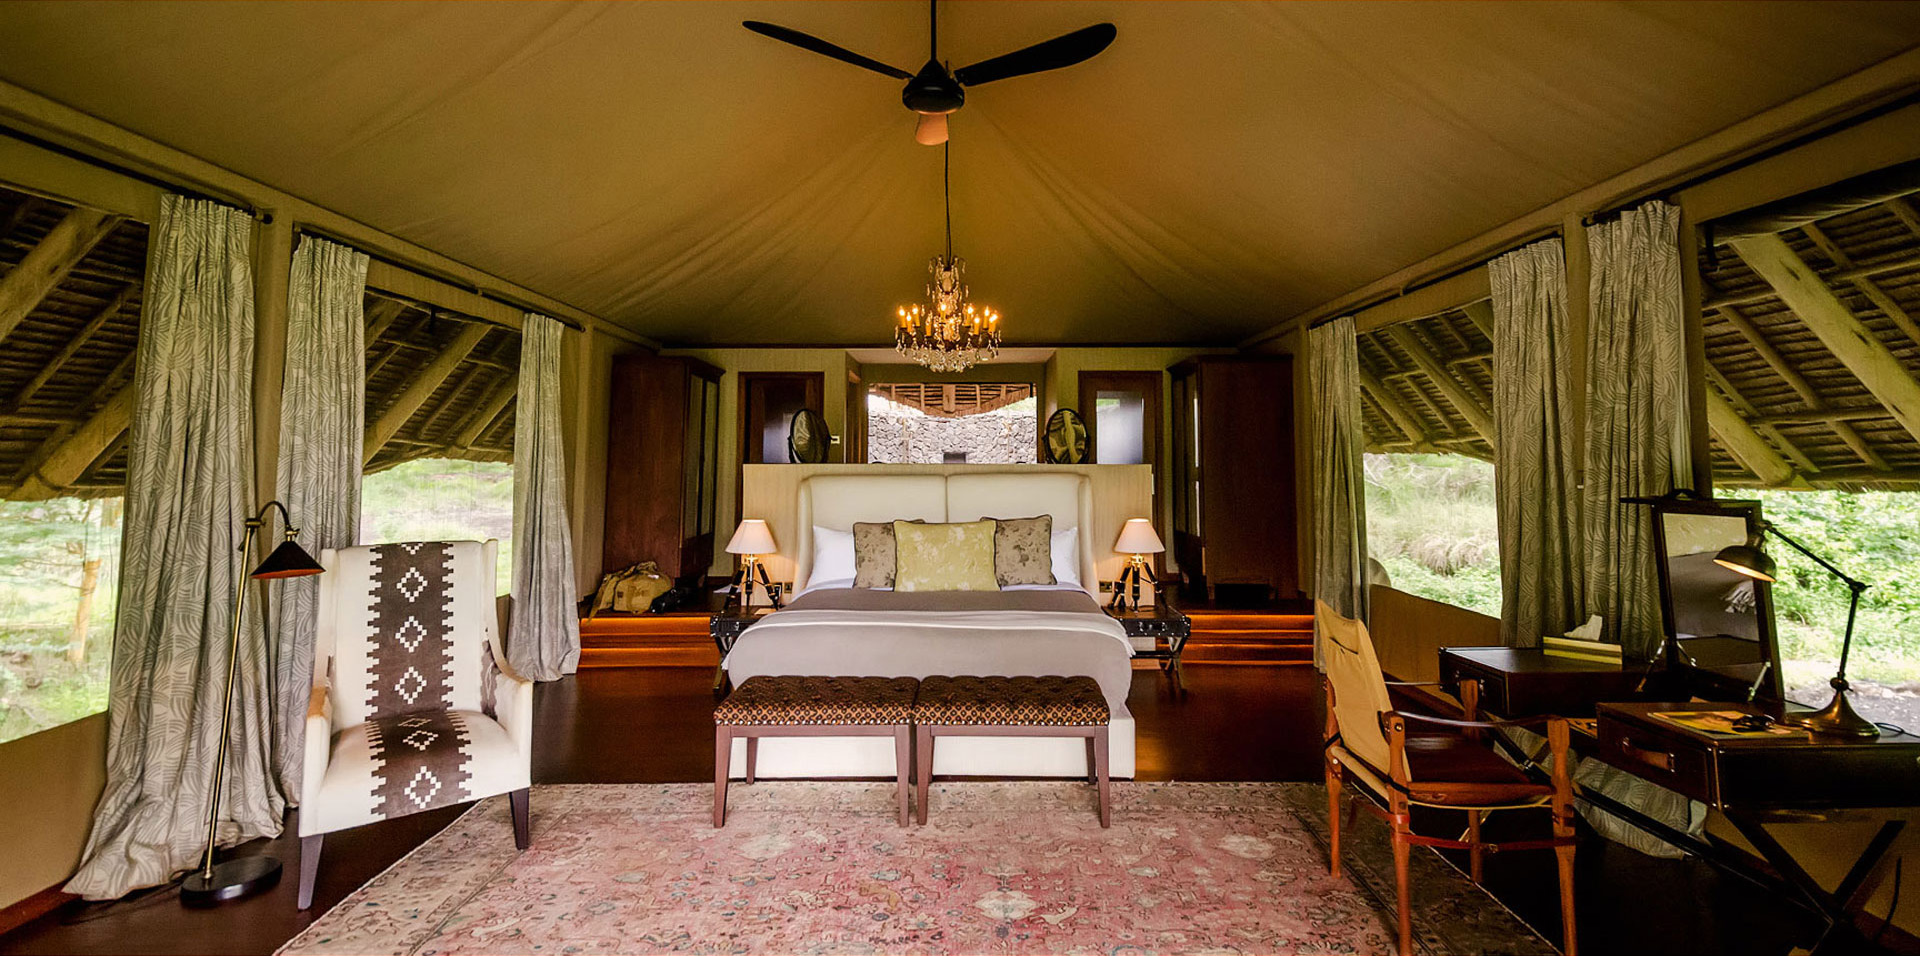 Luxury Tent at the Finch Hattons Lodge in Western Tsavo National Park, Kenya